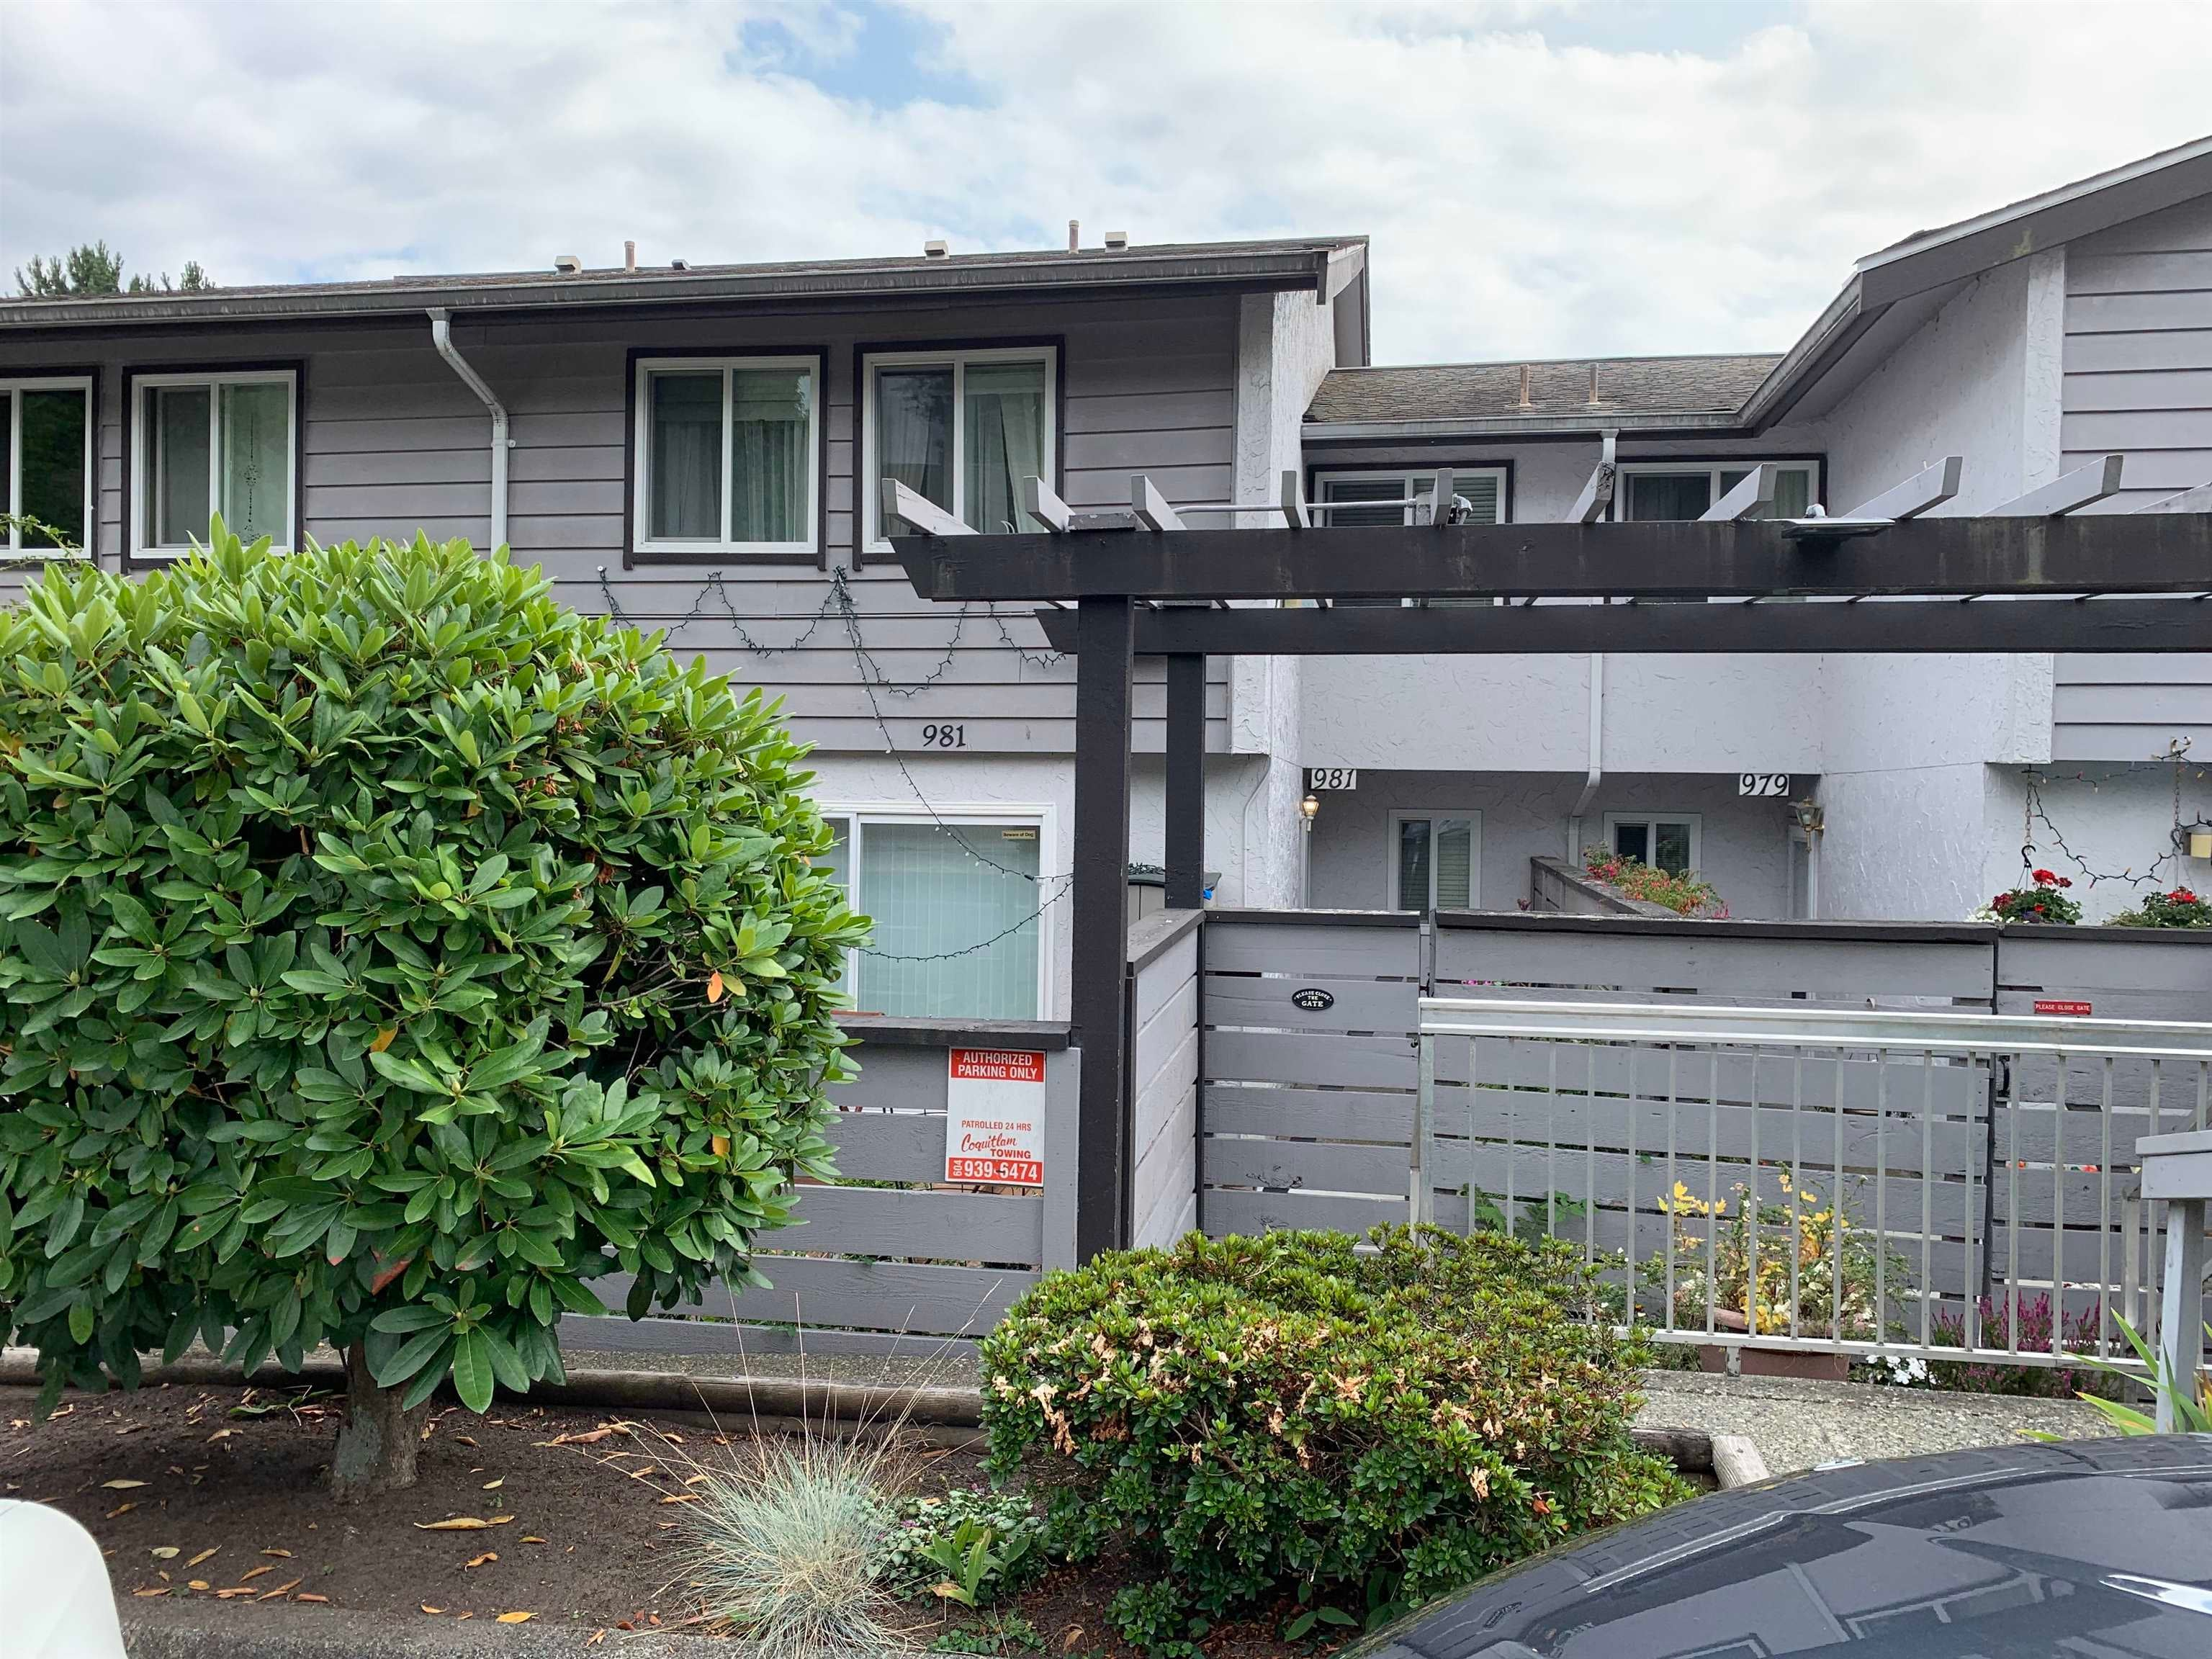 981 HOWIE AVENUE - Central Coquitlam Townhouse for sale, 3 Bedrooms (R2611807) - #1